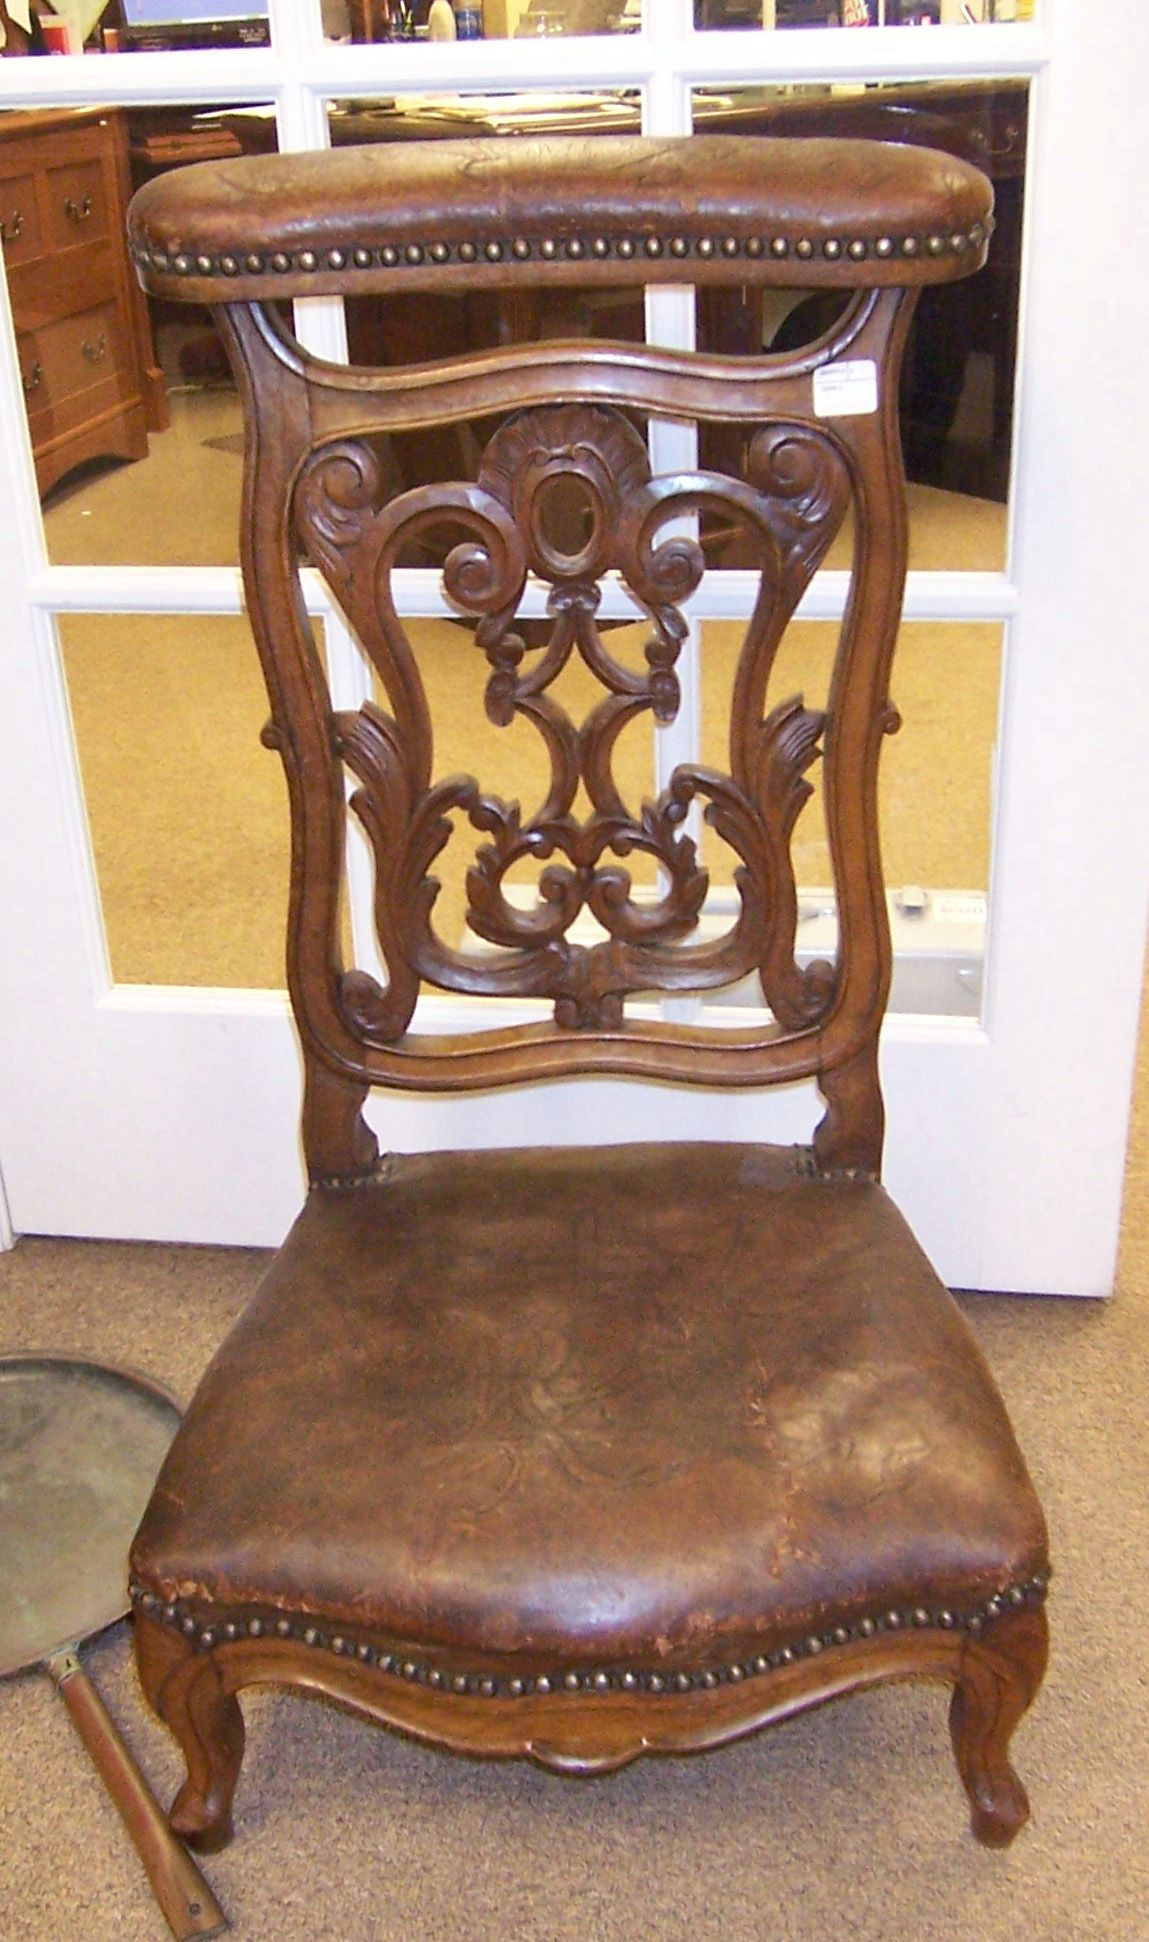 Lolo French Antiques - Louis XV French prayer chair, early 19th c. Walnut w - Lolo French Antiques - Louis XV French Prayer Chair, Early 19th C